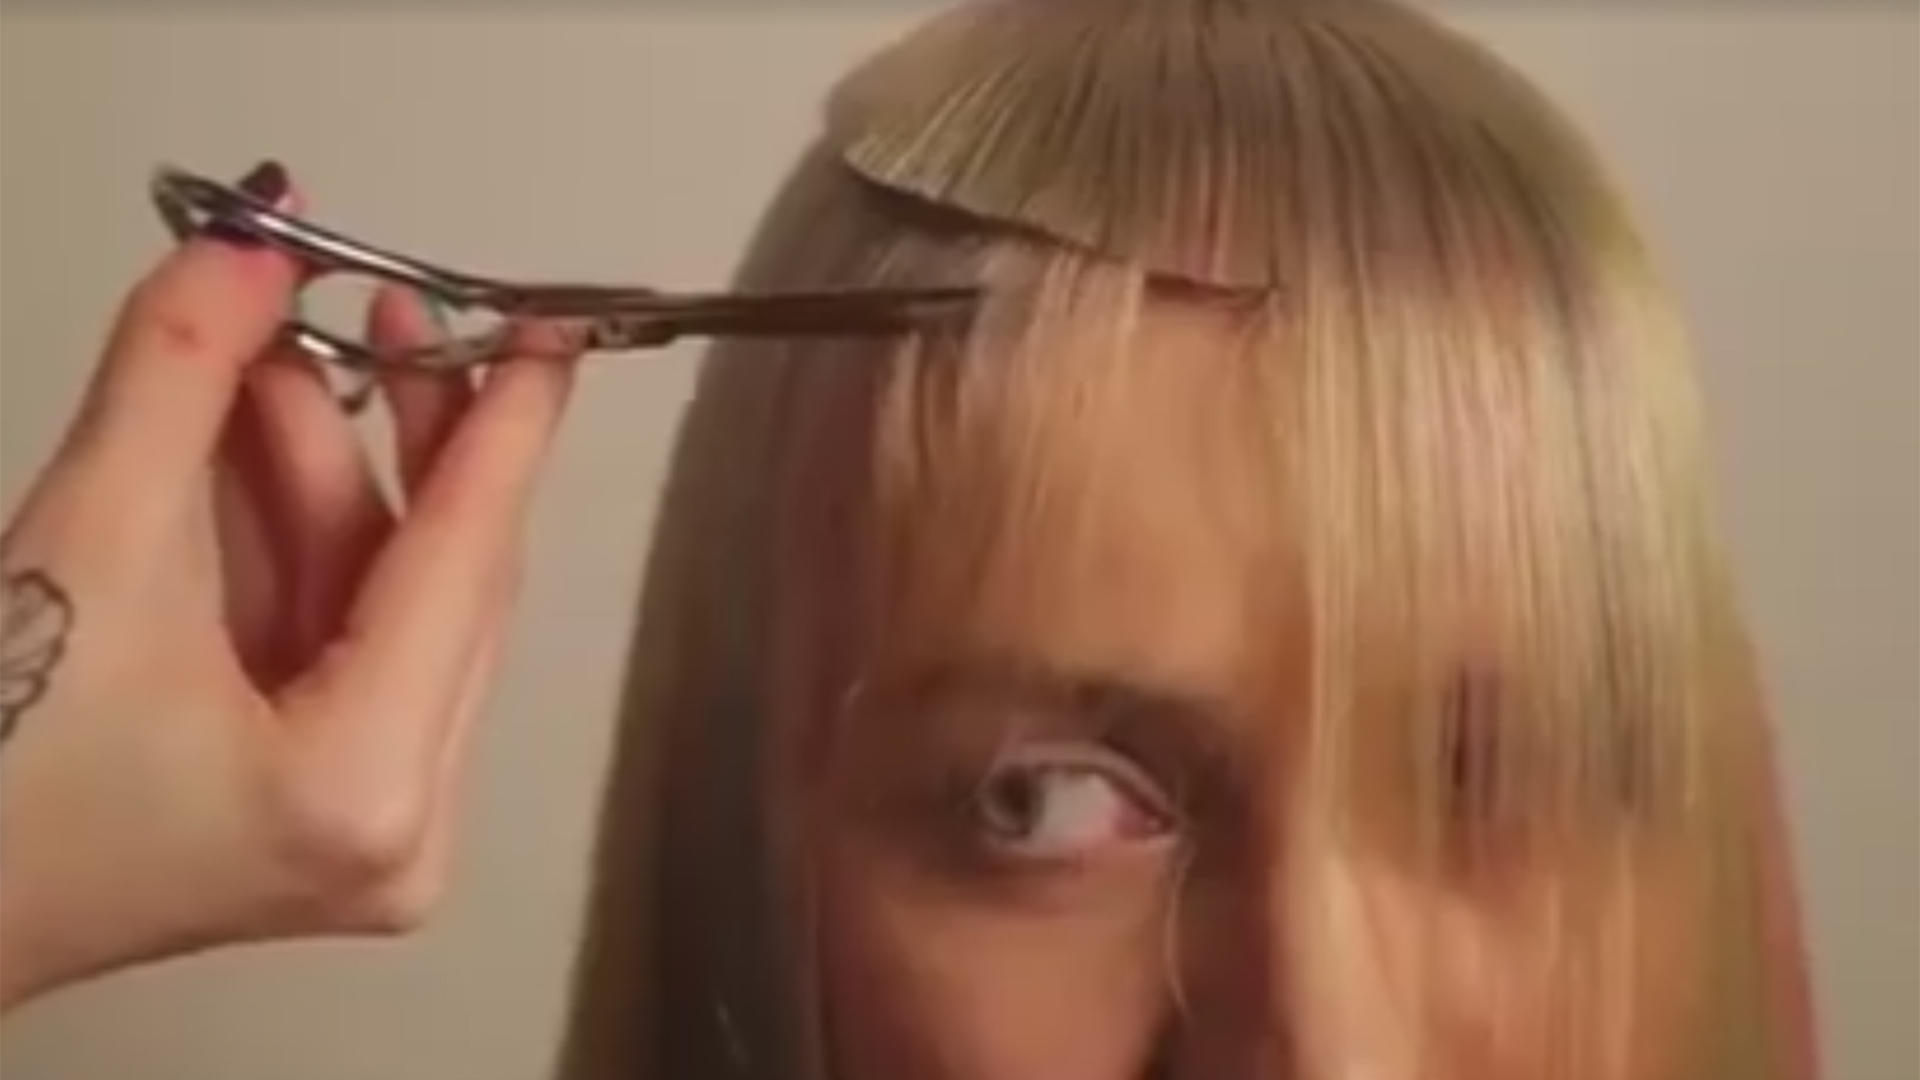 Extreme Haircut Gets Blunt Reaction From The Internet